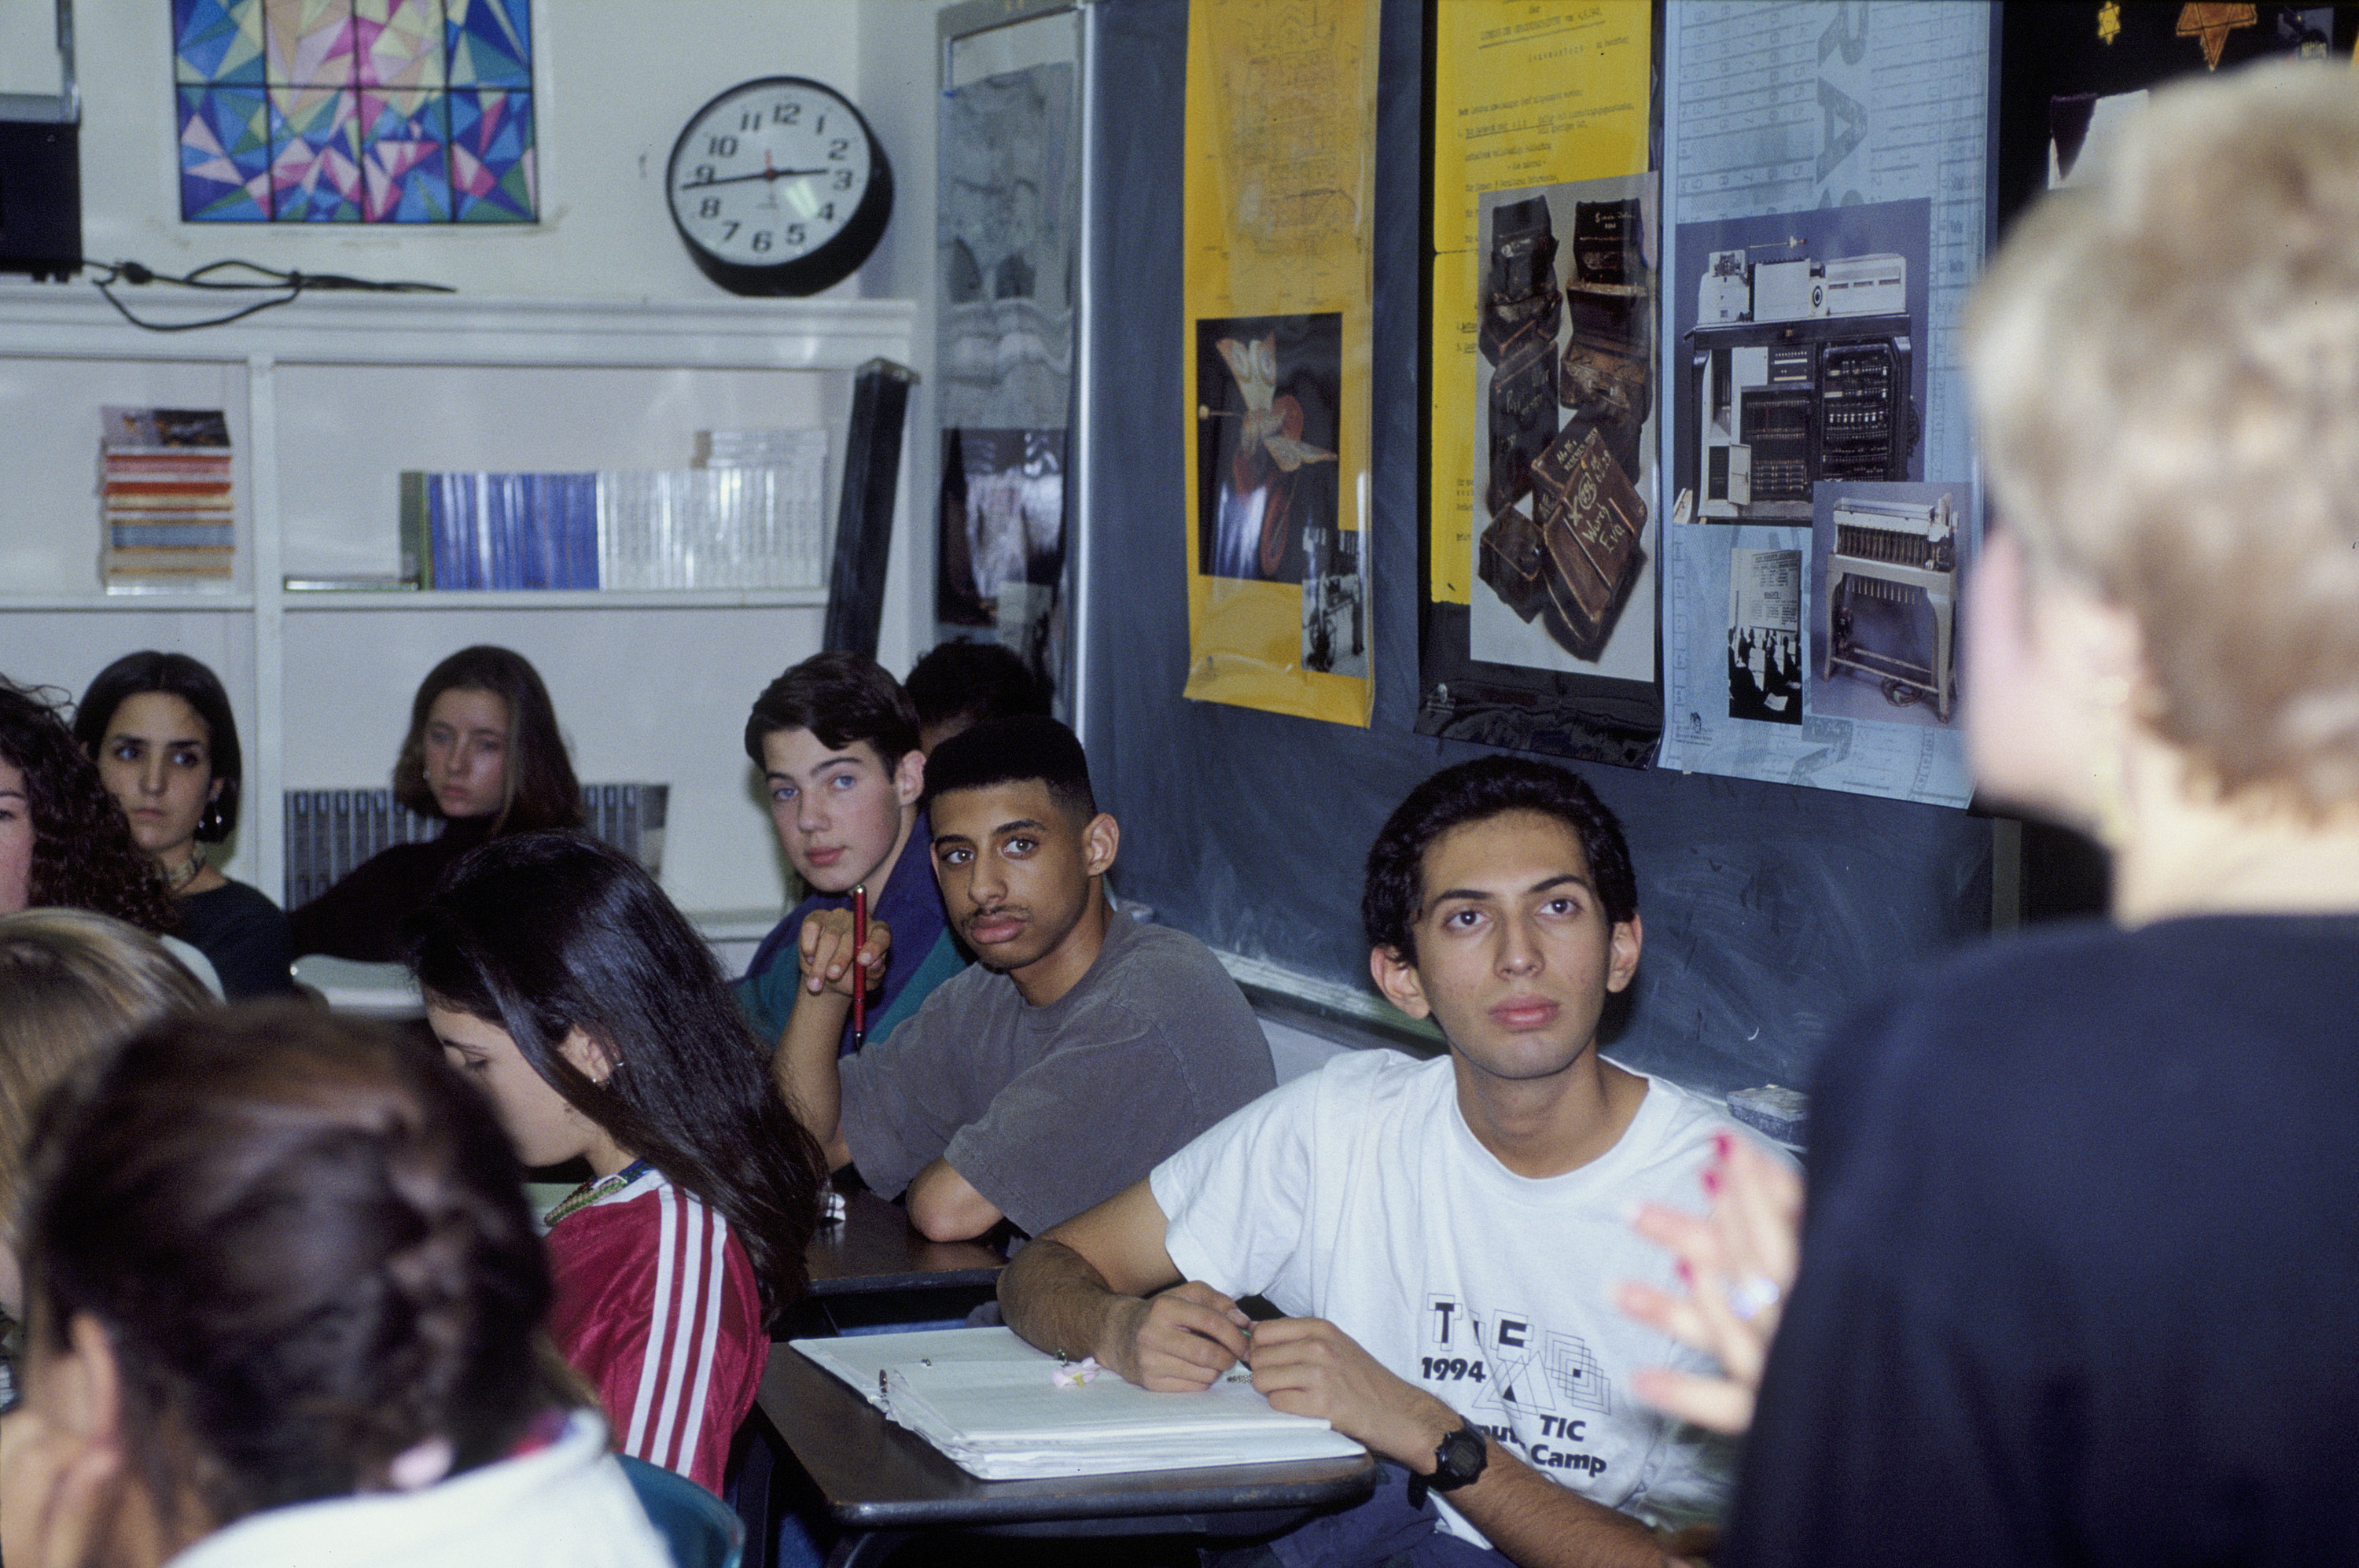 A Holocaust education class at the Maret School, an independent college preparatory day school in Washington, DC, makes use of a poster series produced by the US Holocaust Memorial Museum.